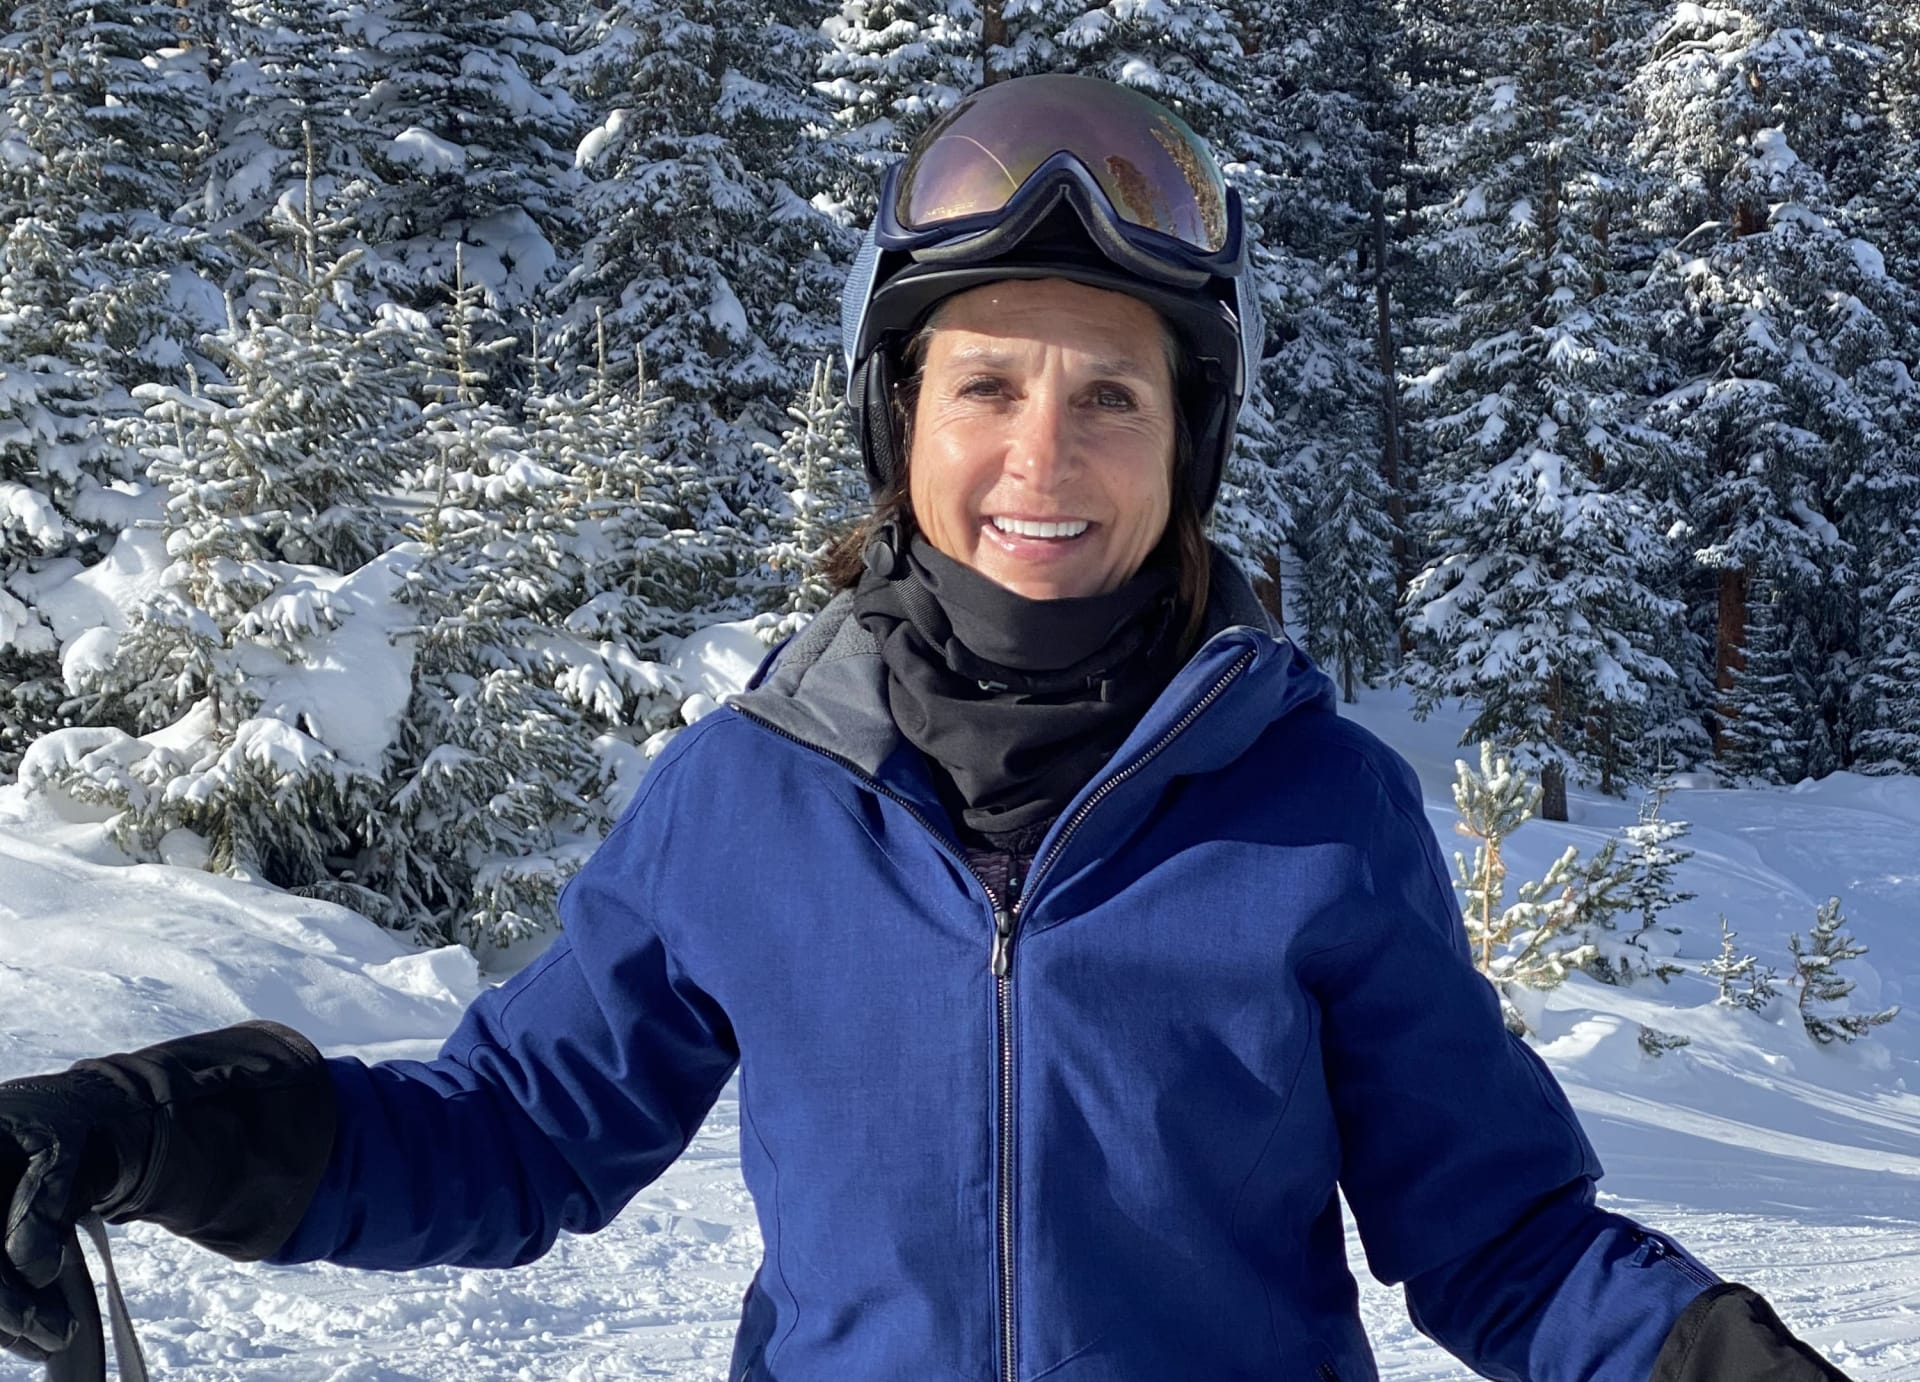 Boulder Real Estate Agent Tricia Dessel of Burgess Group Compass: Five Questions On Hobbies